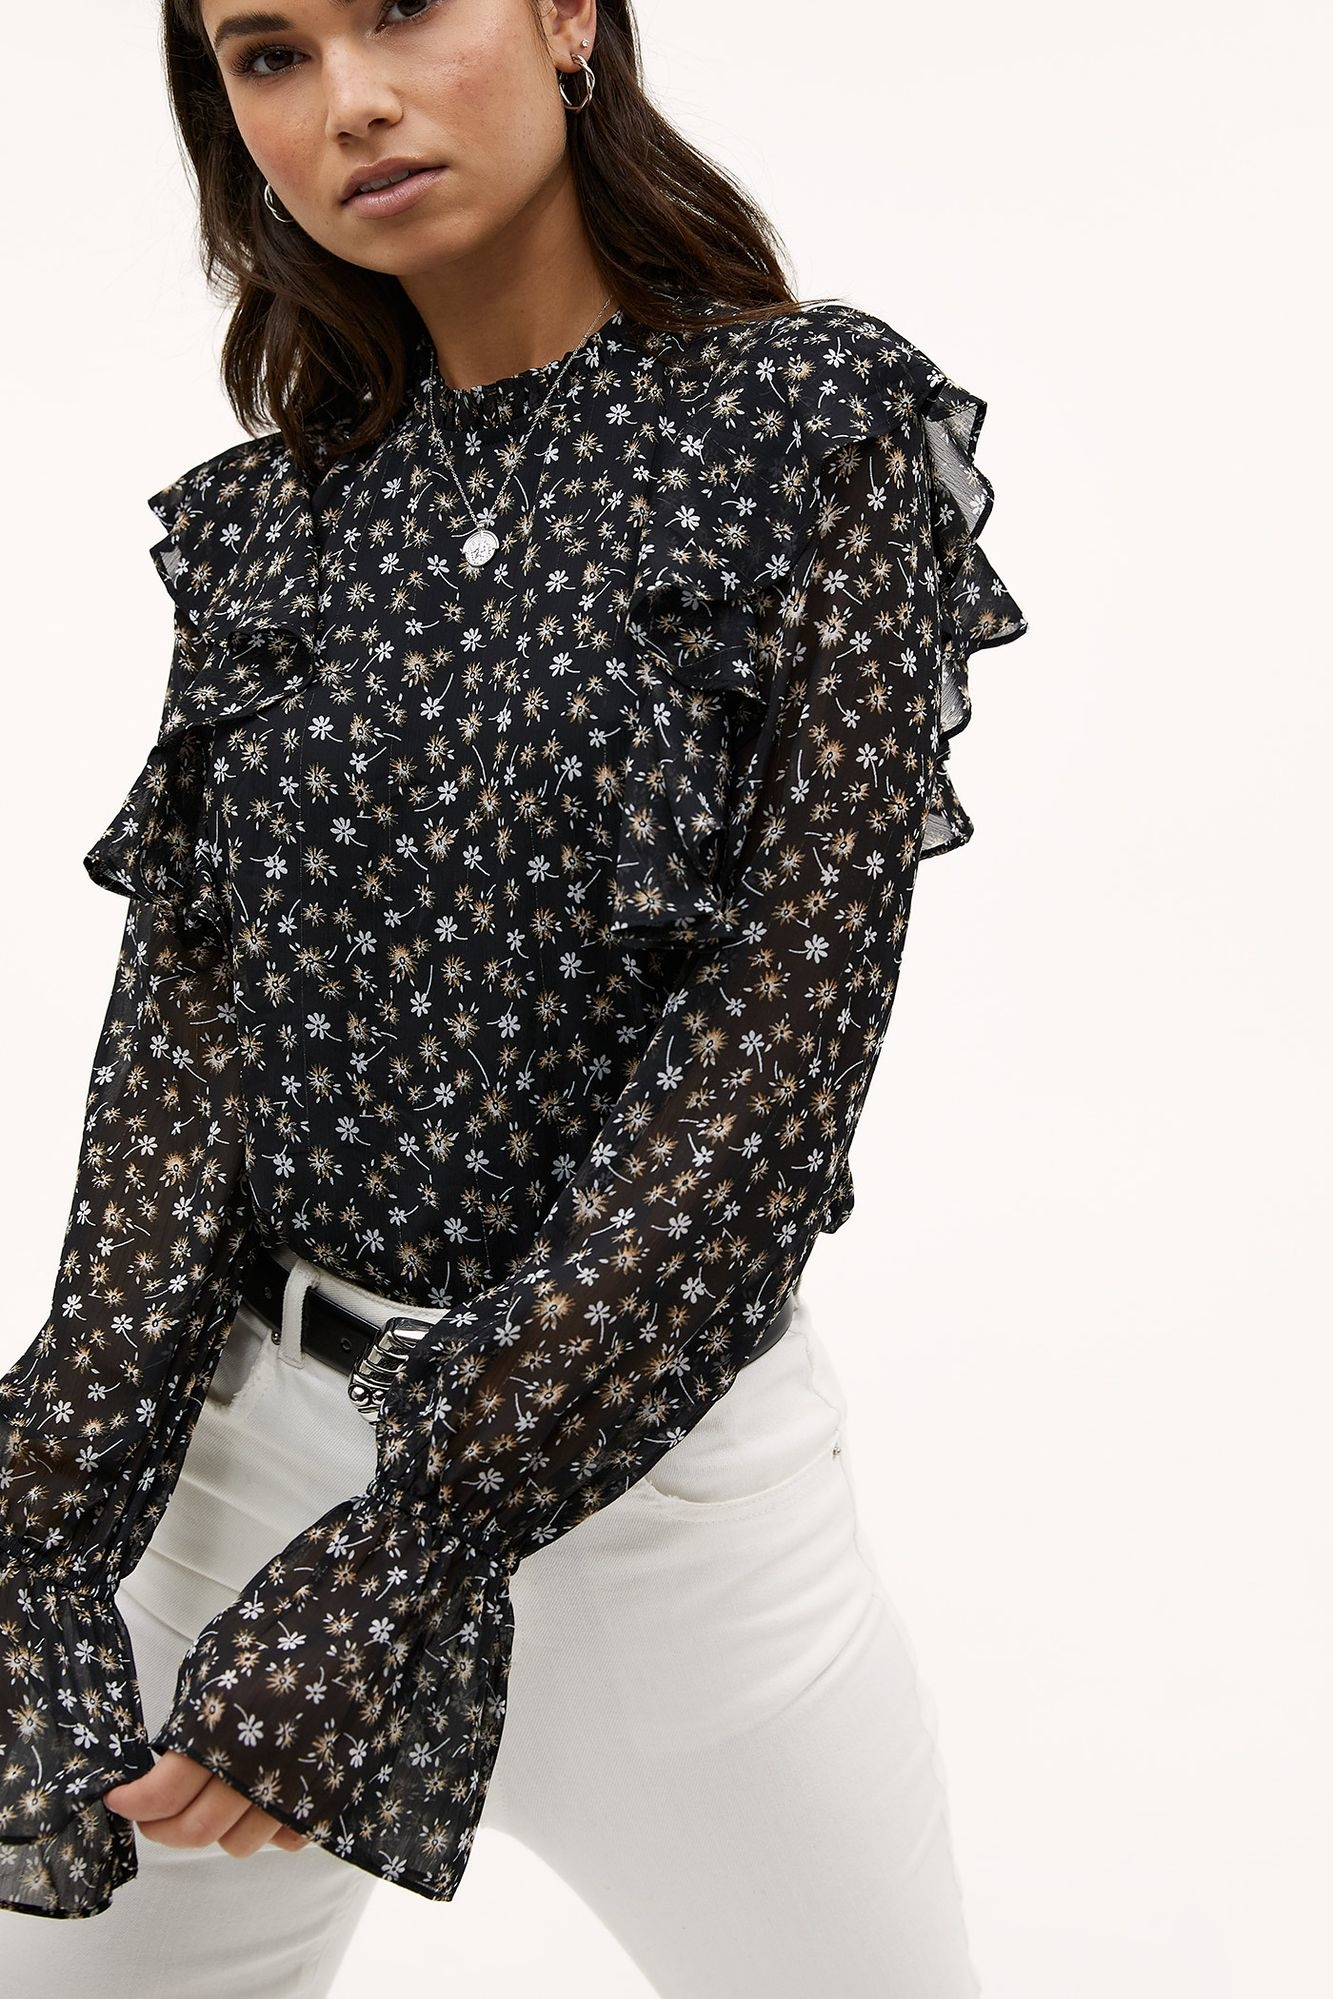 Blouse Day in town Black-4